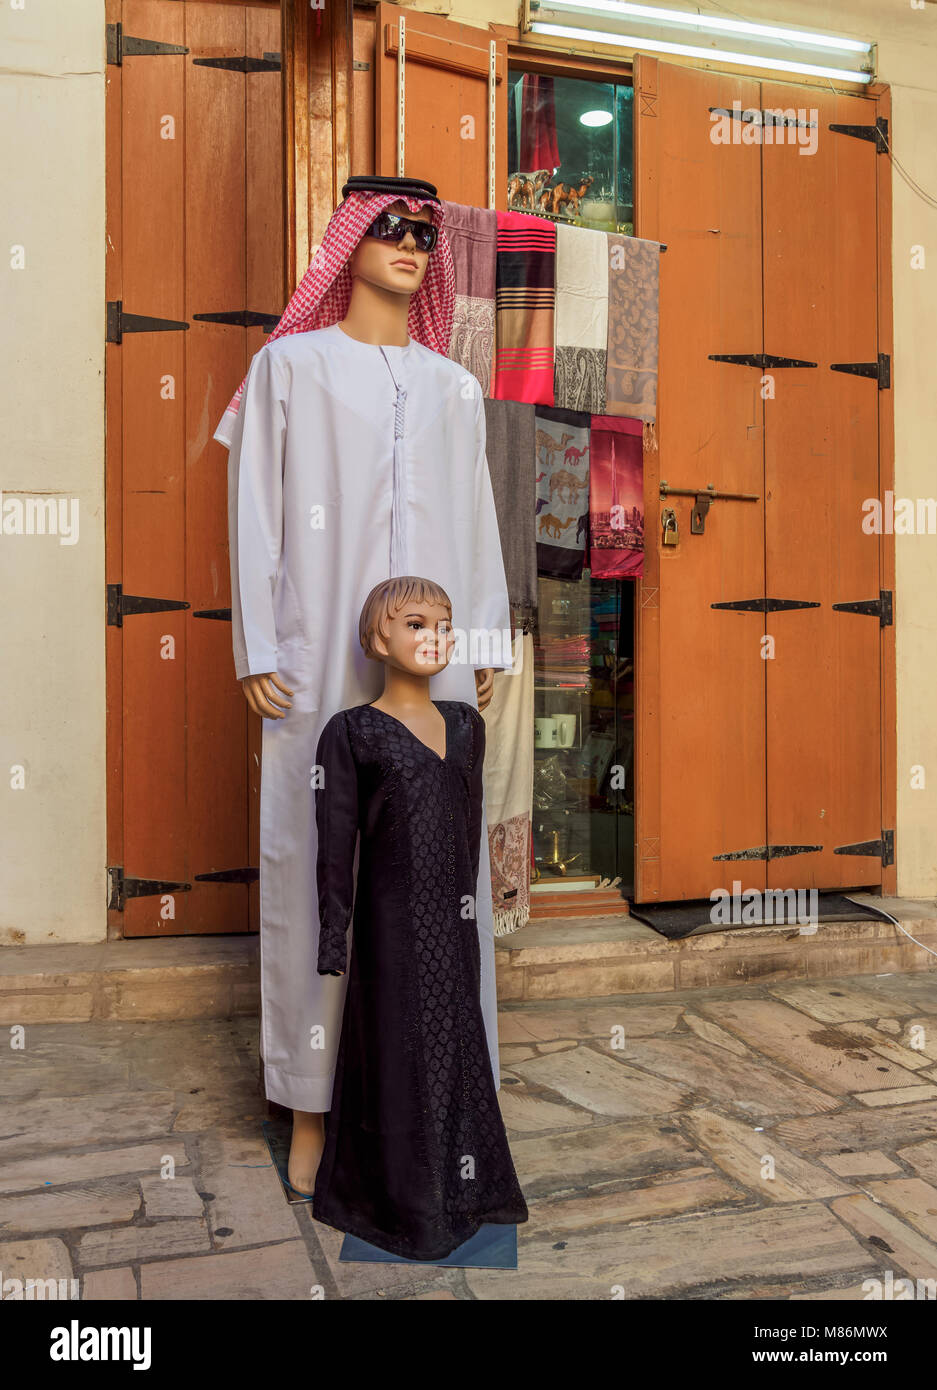 Traditional Clothing sold on the souk, Deira, Dubai, United Arab Emirates - Stock Image